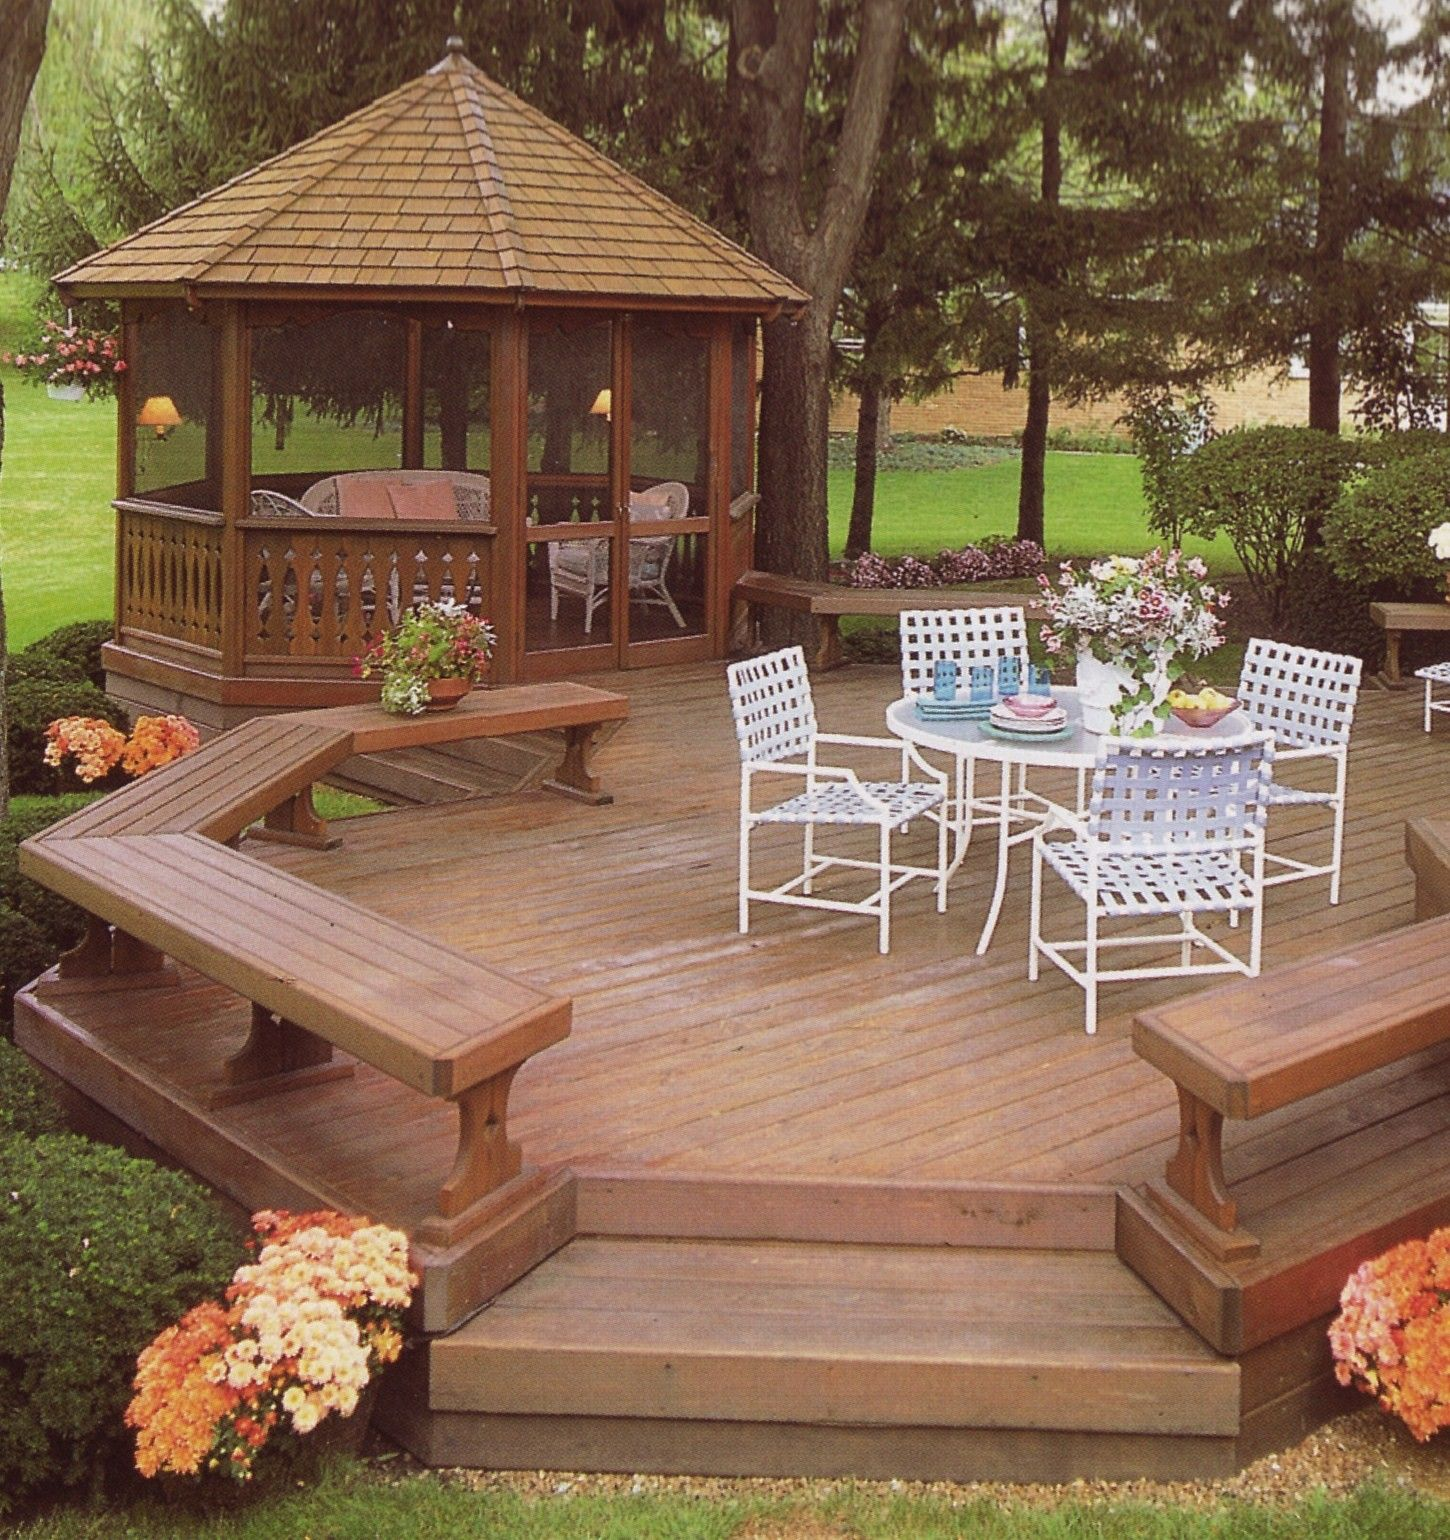 Open Freestanding Deck With Bench Seating Plus A Screened